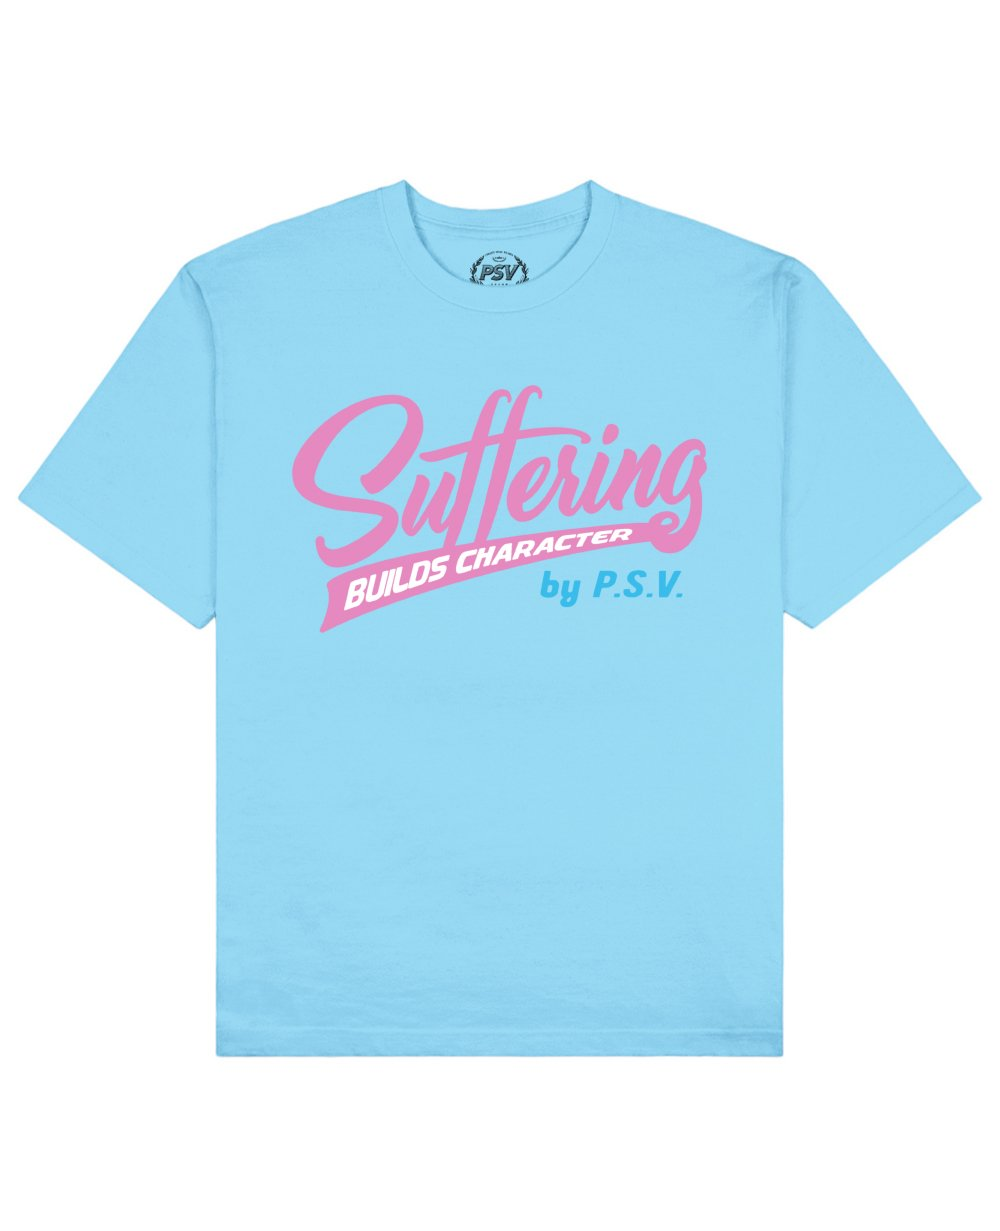 Suffering Builds Character Print T-Shirt in Light Blue - T-Shirts - PSV - BRANMA